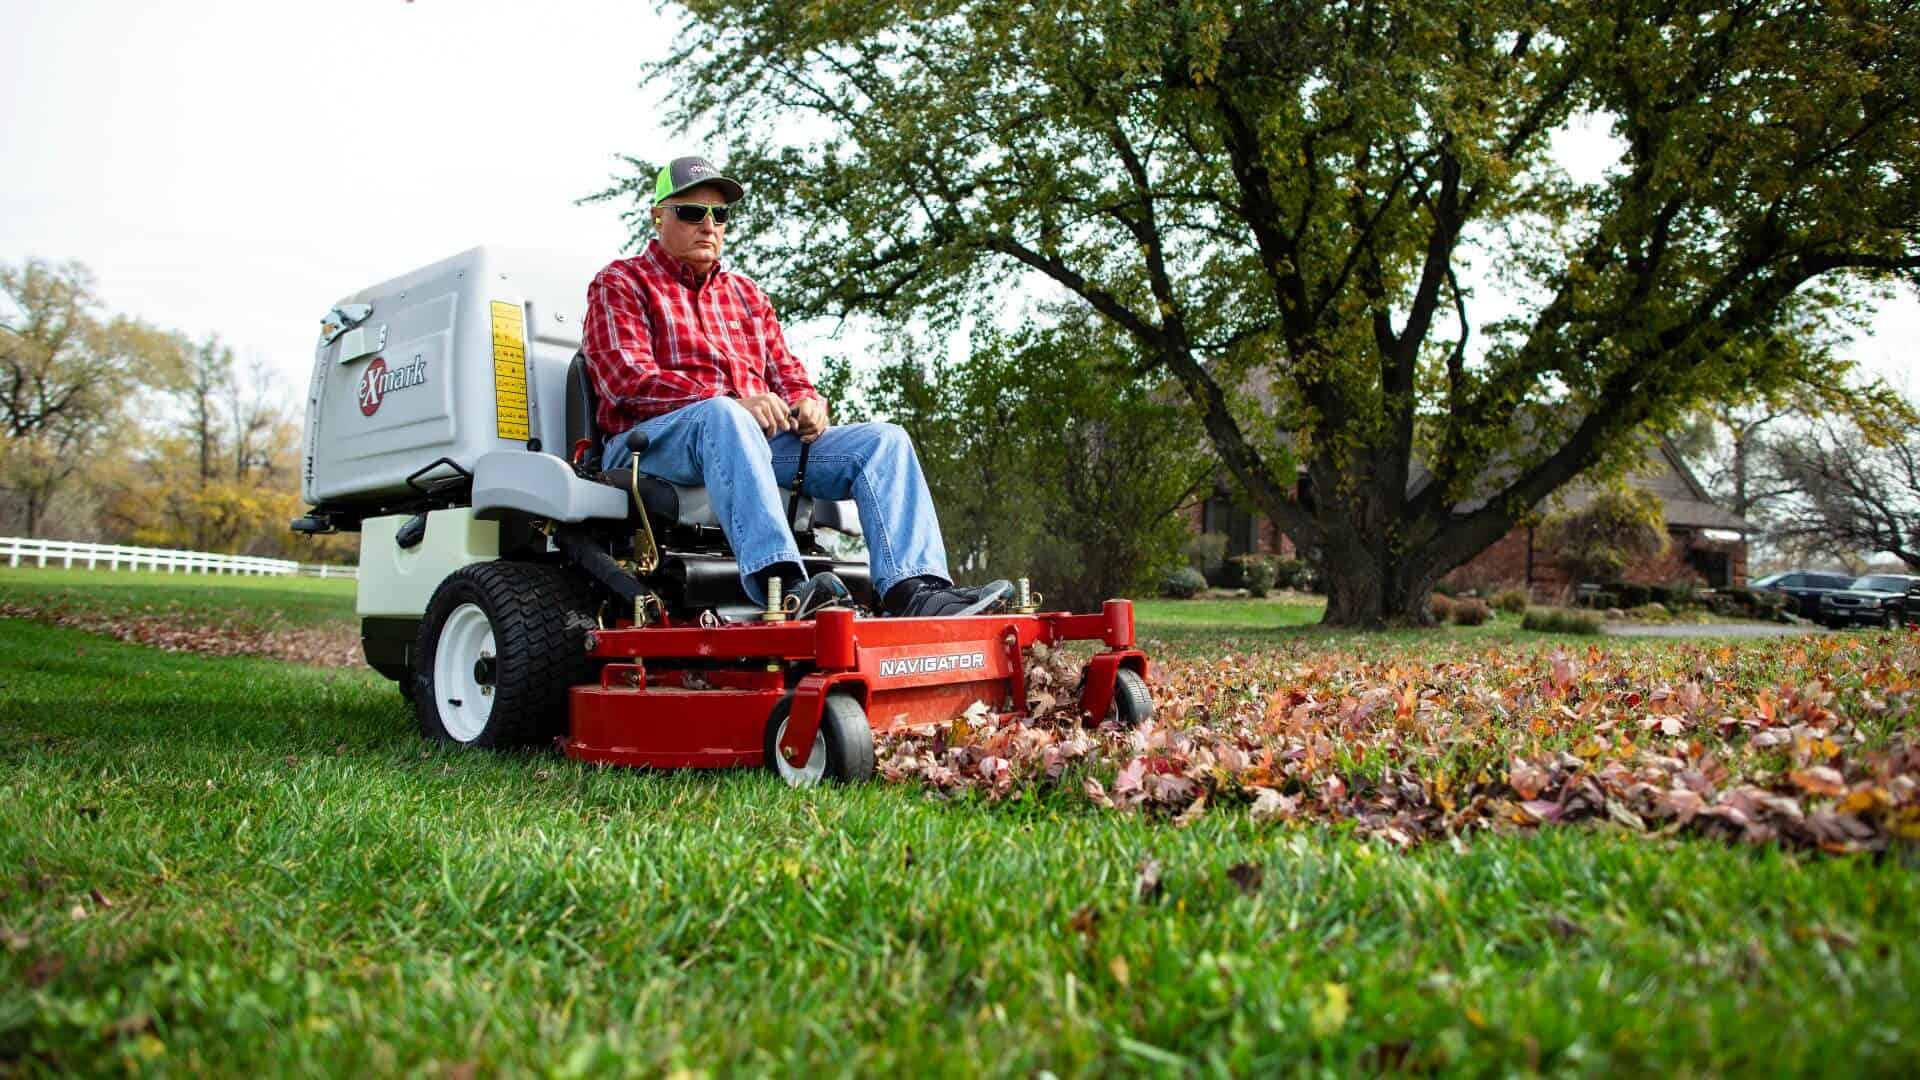 Exmark mower used to pick up fall leaves